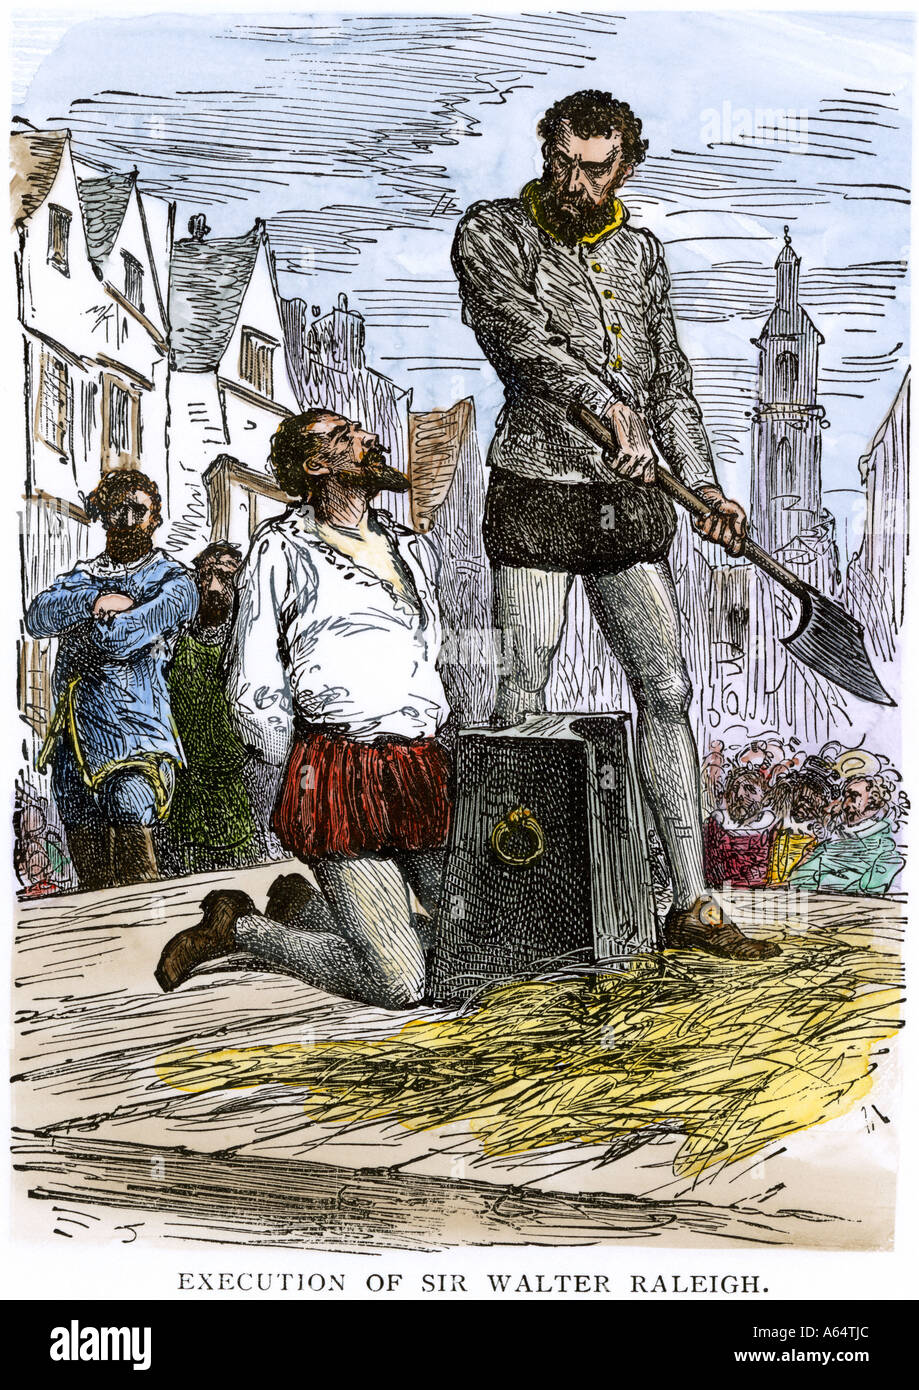 Execution of Sir Walter Raleigh in England 1618. Hand-colored woodcut - Stock Image